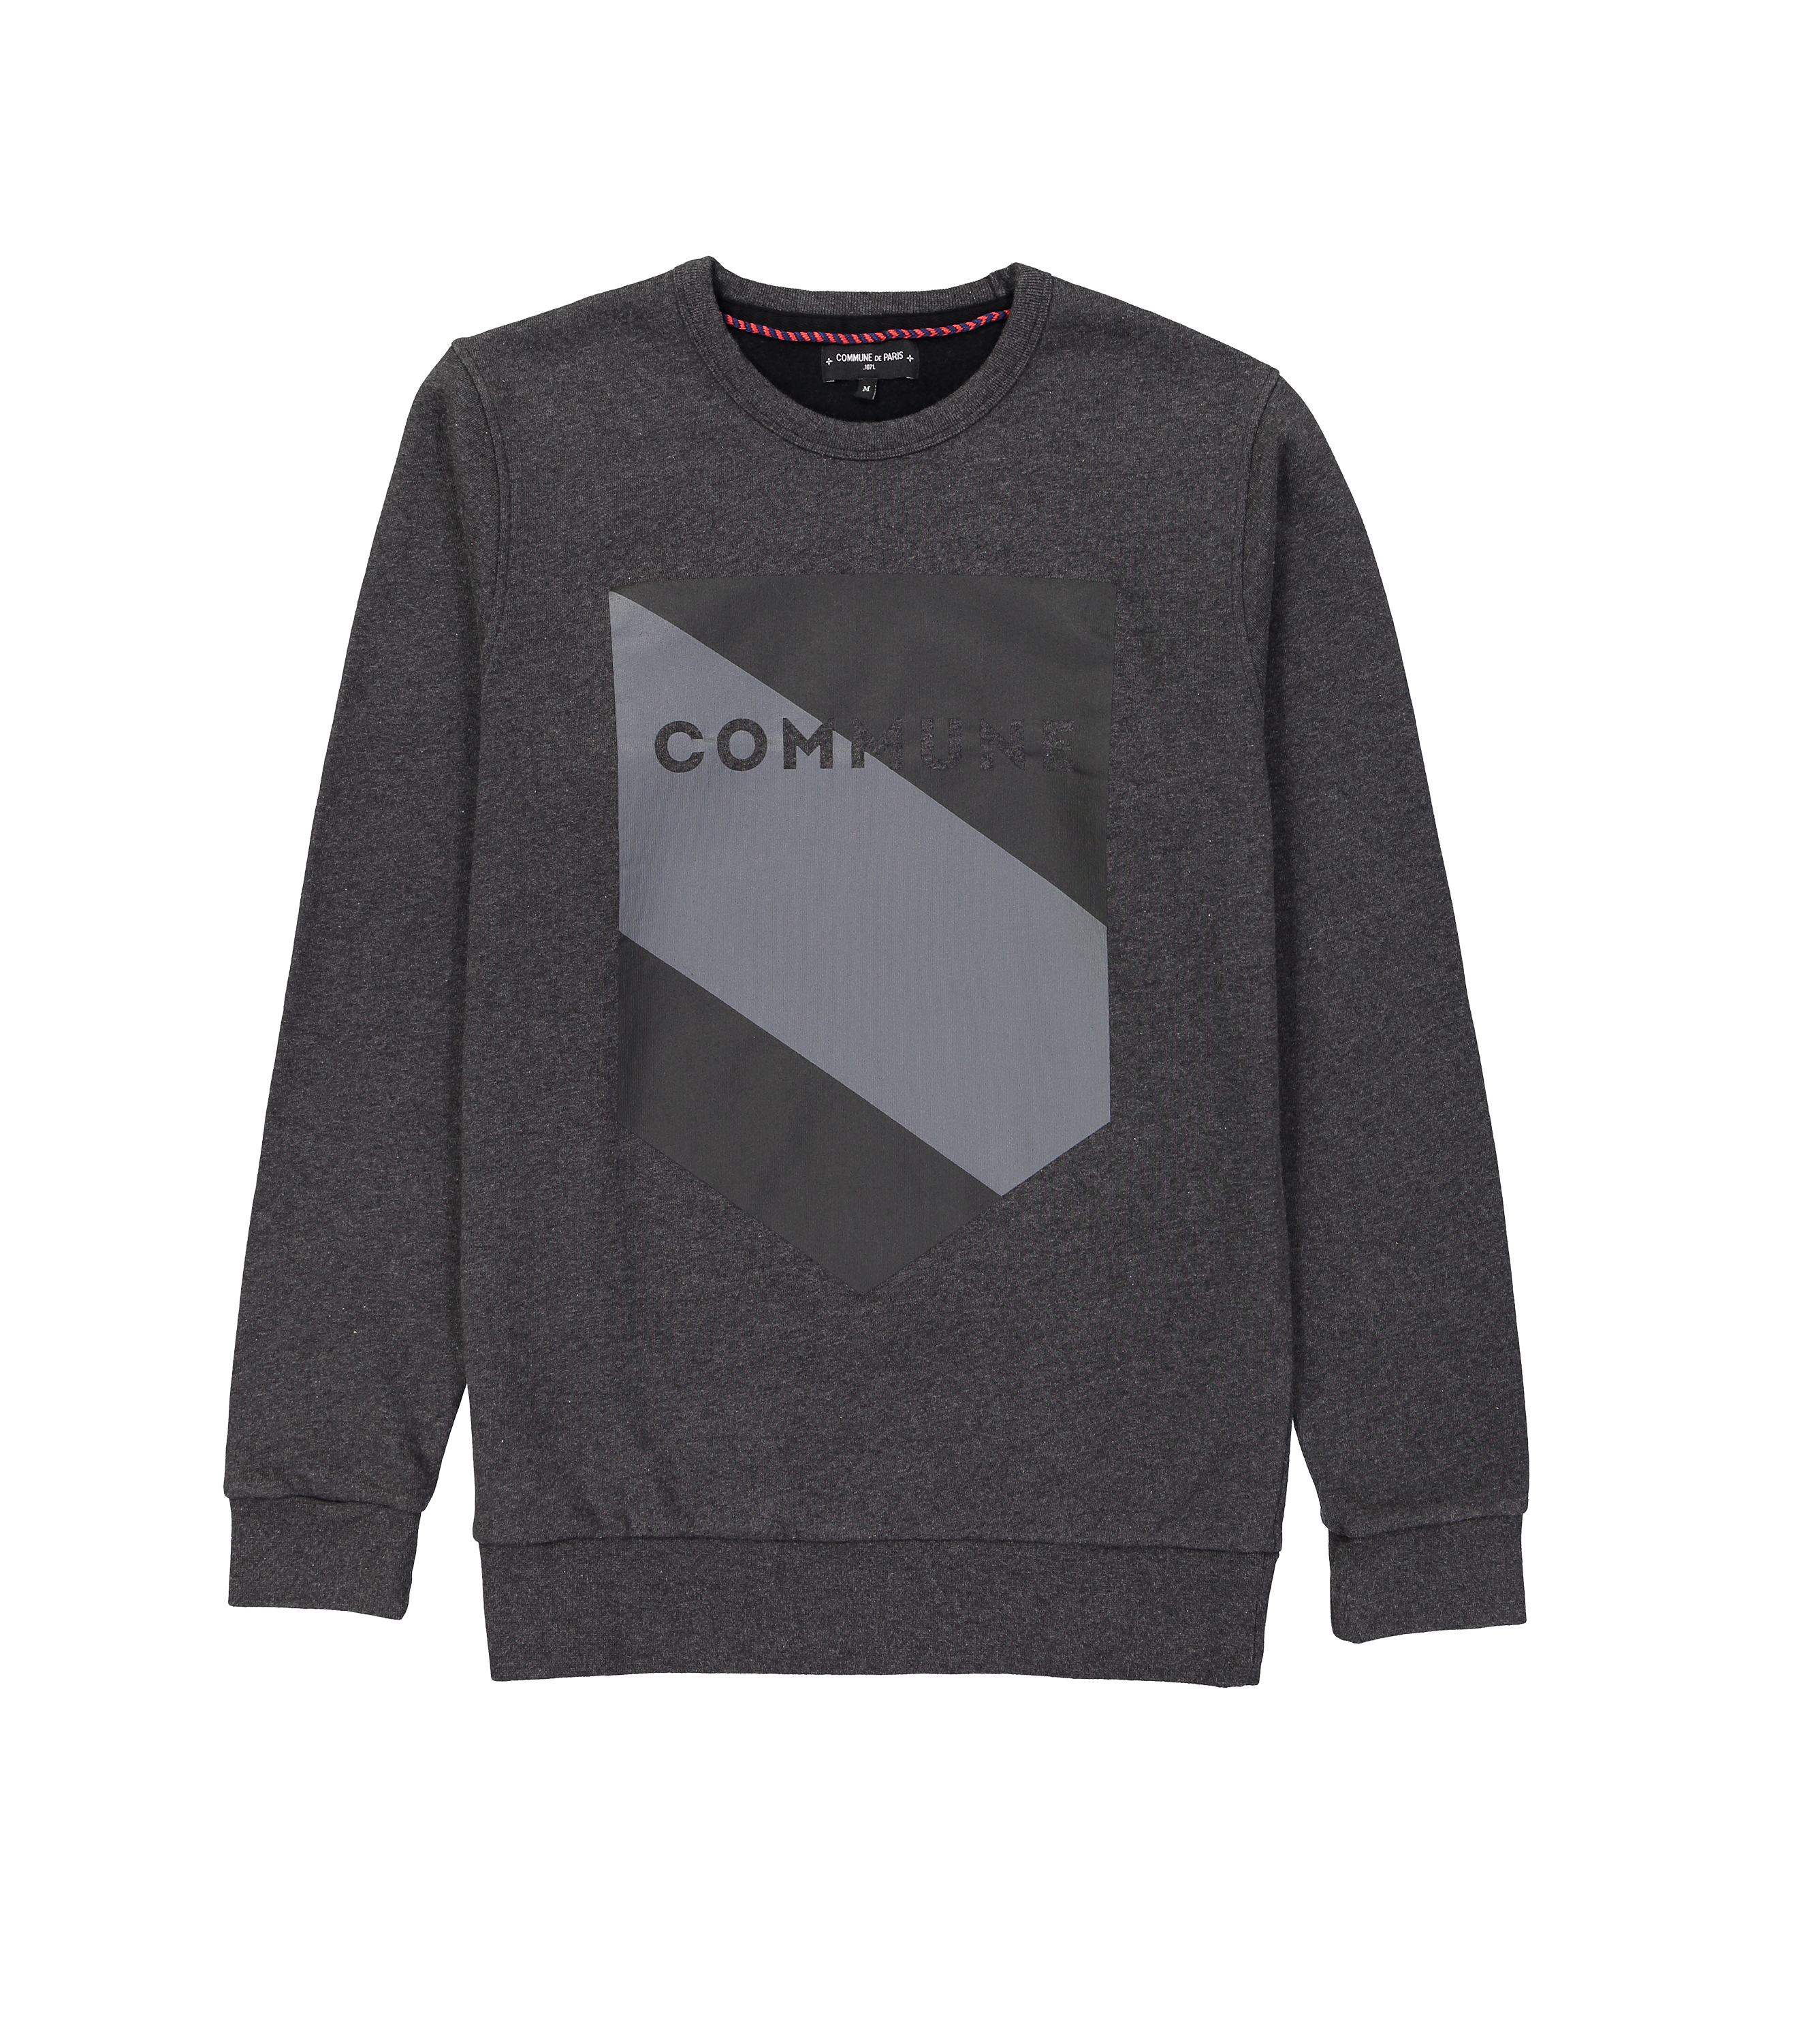 SWEAT BLASON COMMUNE - Gris fonce